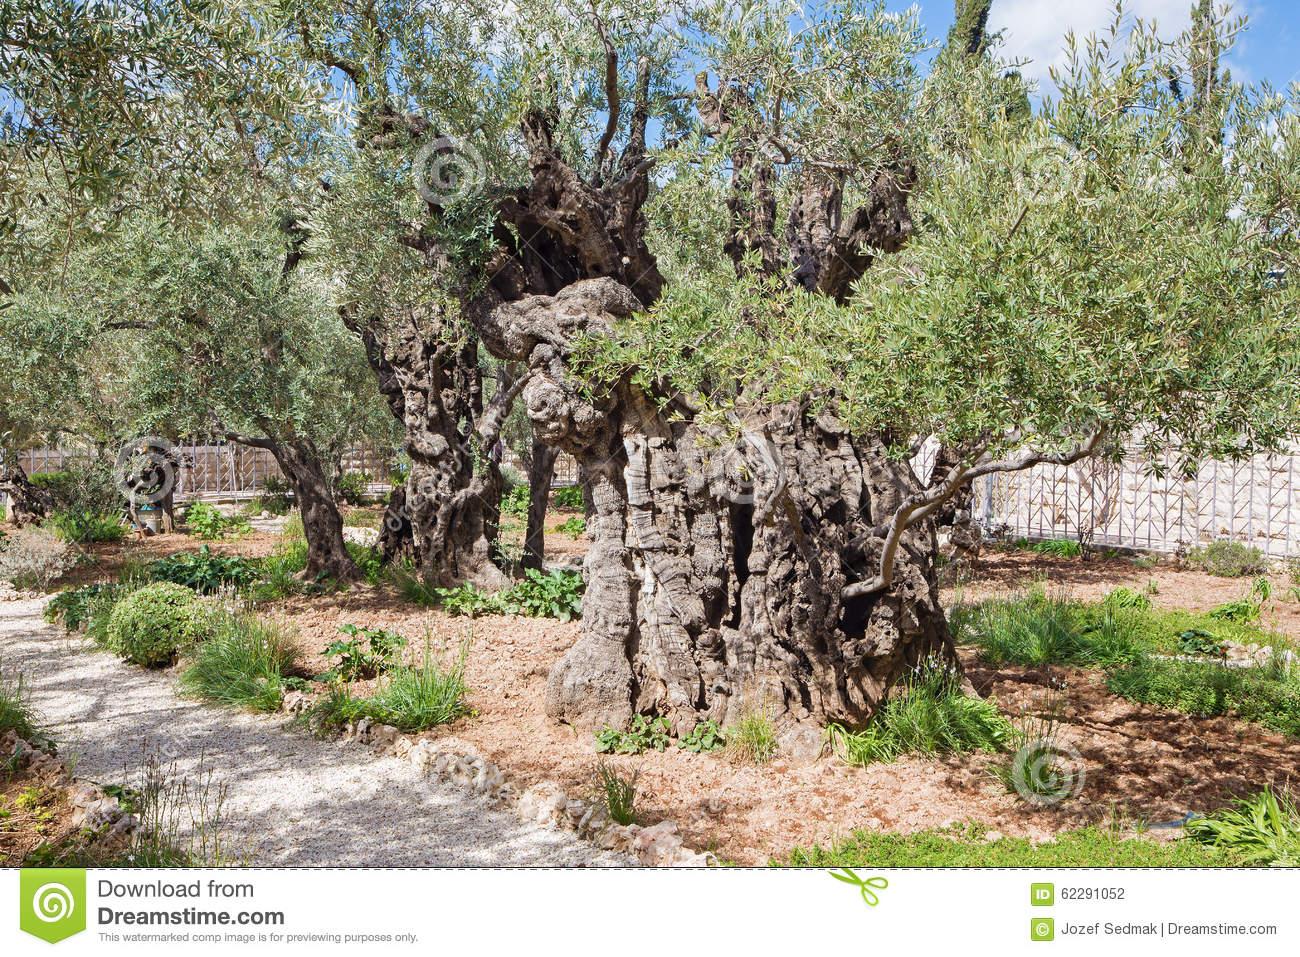 Jerusalem the very old olive tree in the garden before for Age olive trees garden gethsemane